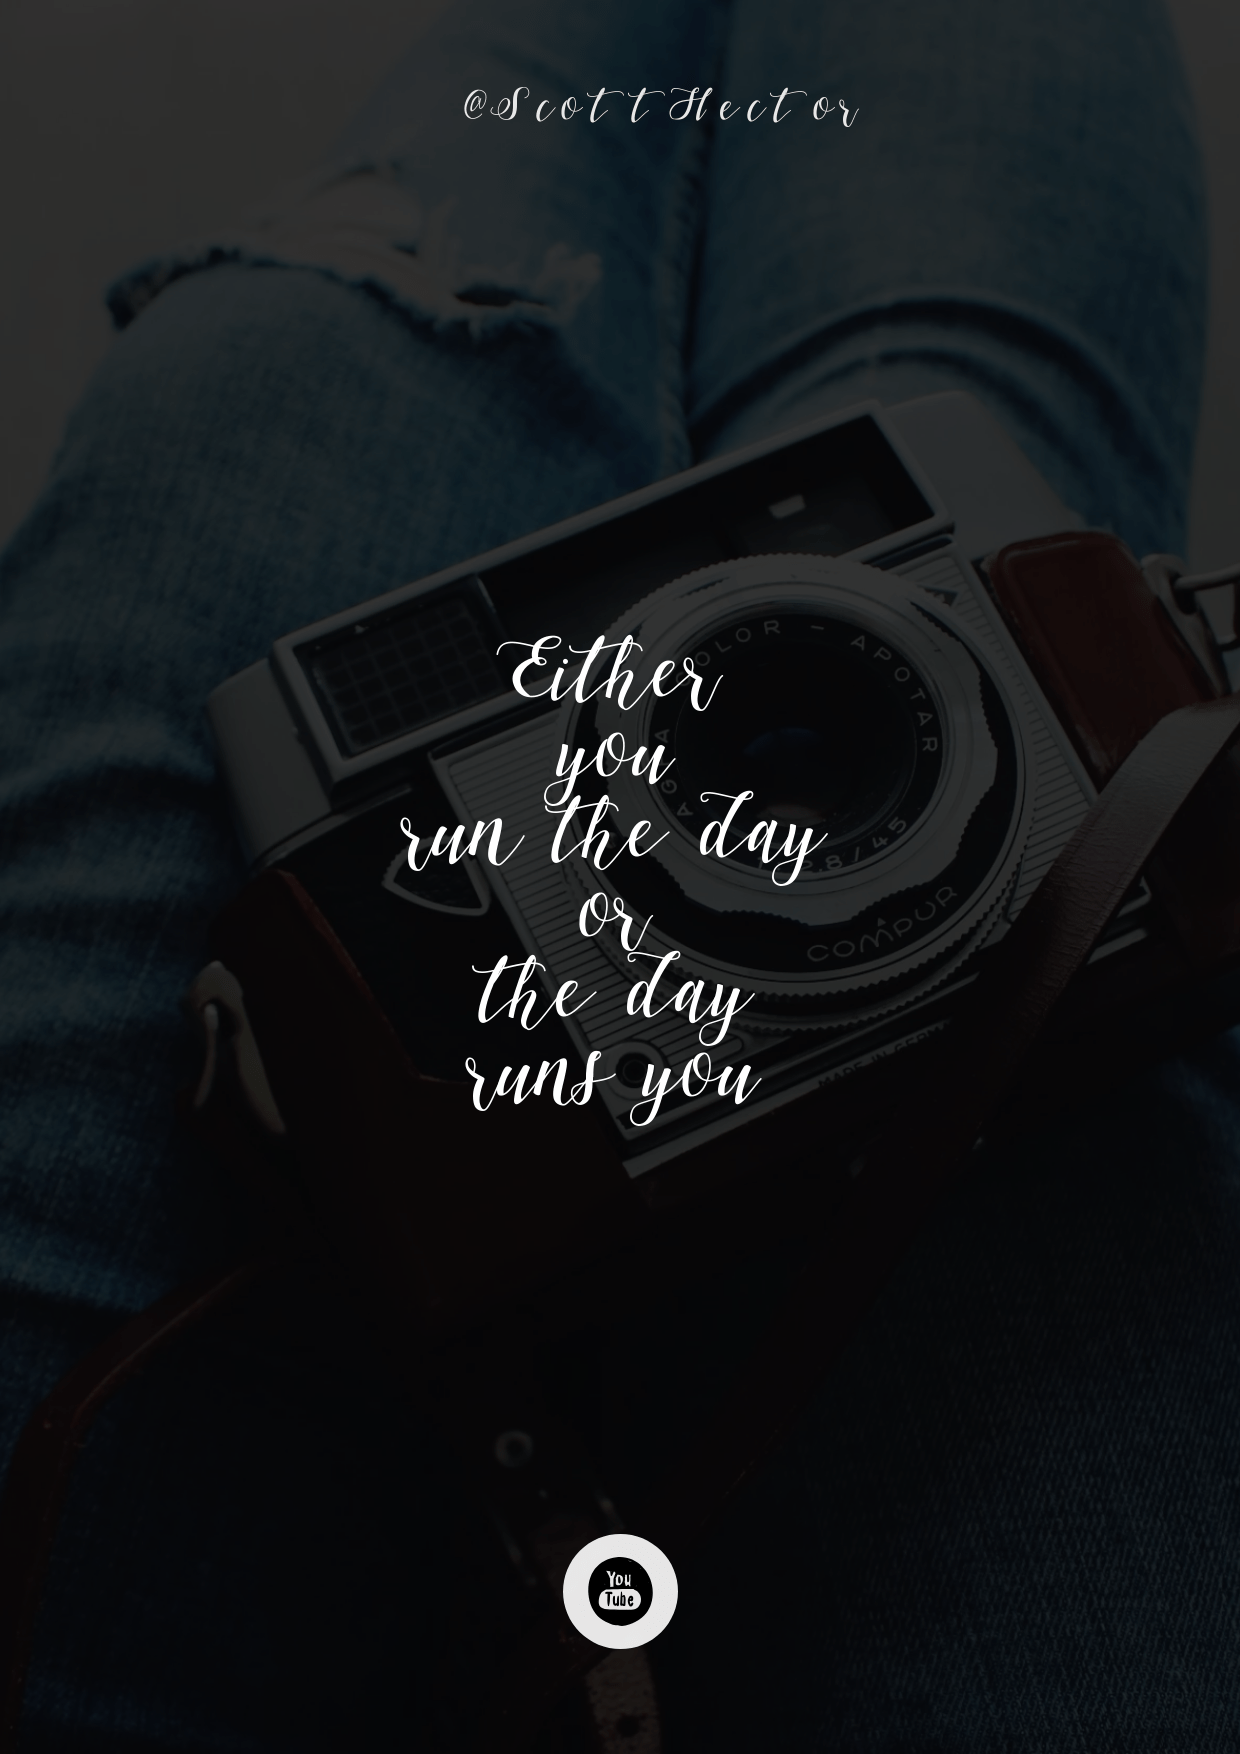 Text,                Font,                Photography,                Darkness,                Product,                Computer,                Wallpaper,                Brand,                Graphics,                Logo,                Camera,                Cameras,                &,                 Free Image